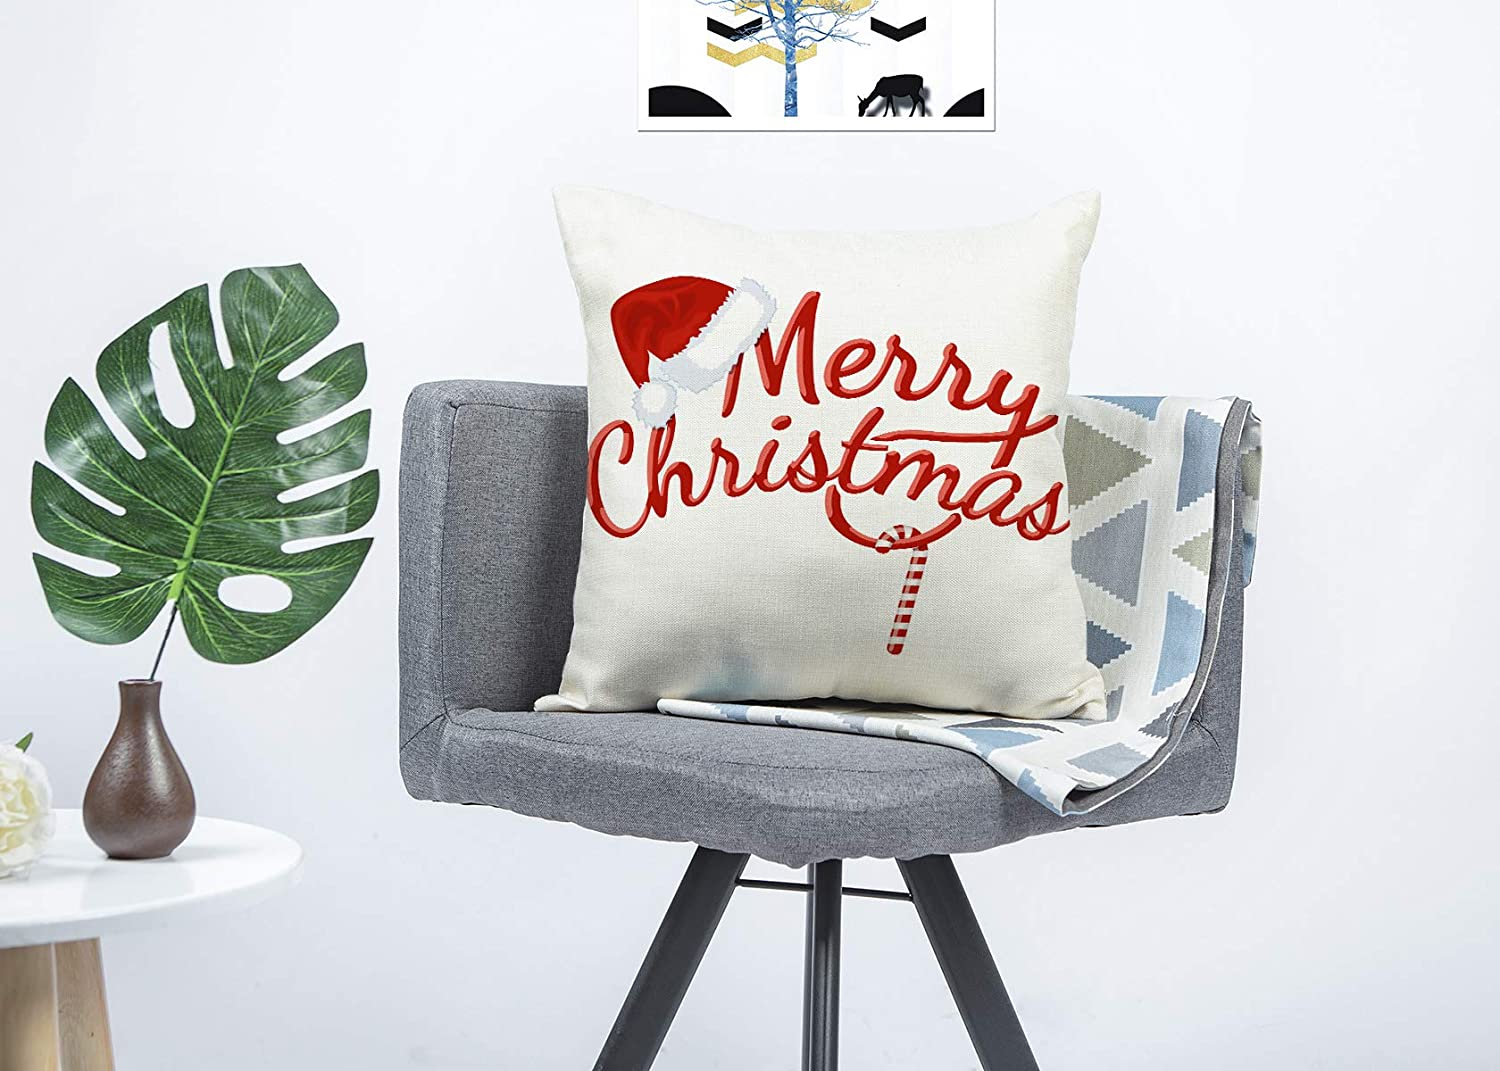 4TH Emotion Red Merry Christmas Pillow Cover Decorative Throw Cushion Case Home Decor 18 x 18 Inch Cotton Linen for Sofa